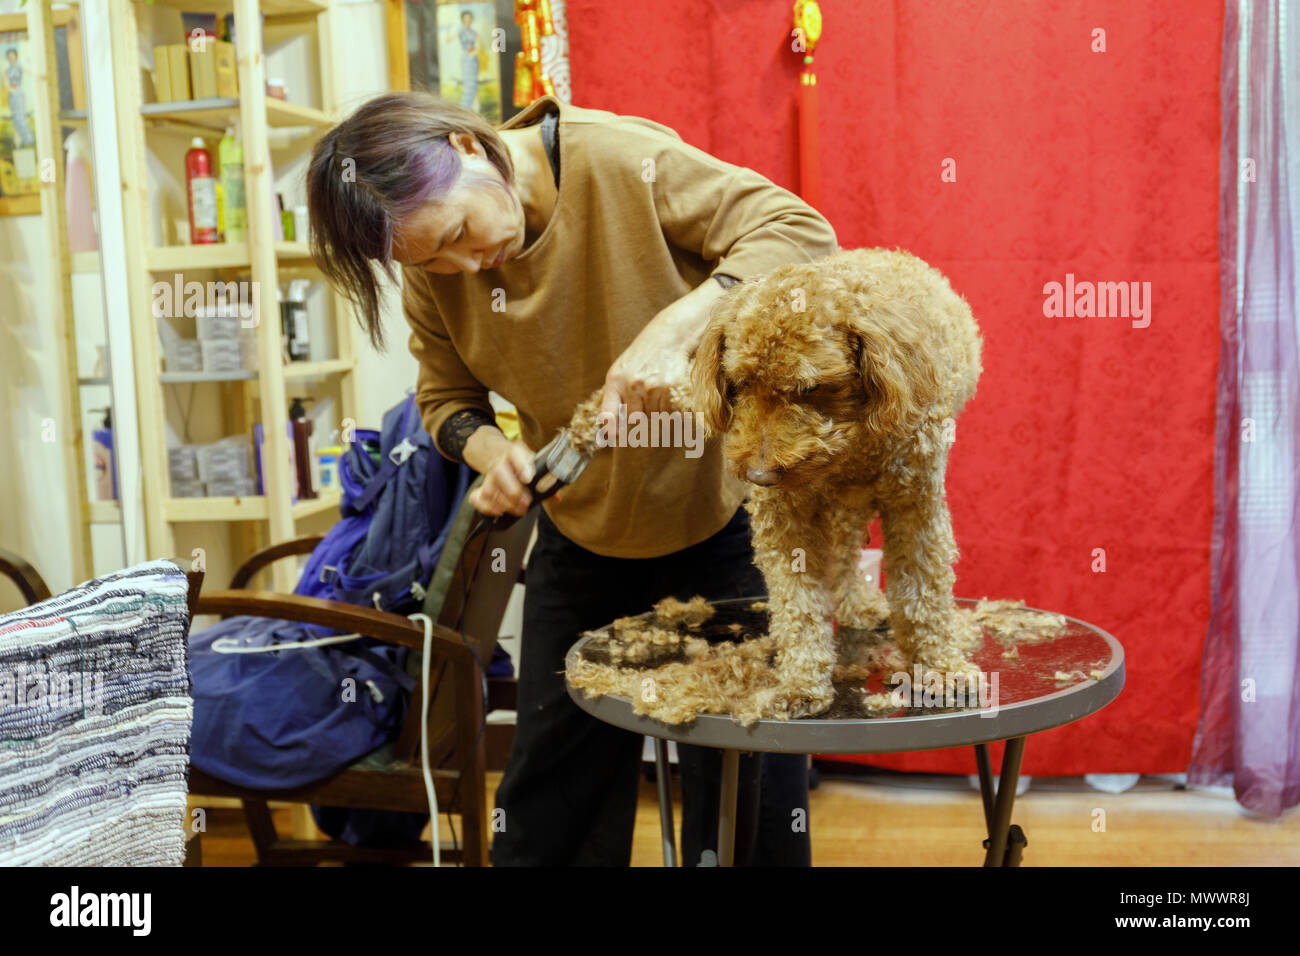 Mature Taiwanese woman hairdresser of Chinese descent grooming her pet chocolate poodle in her home and hair studio Stock Photo